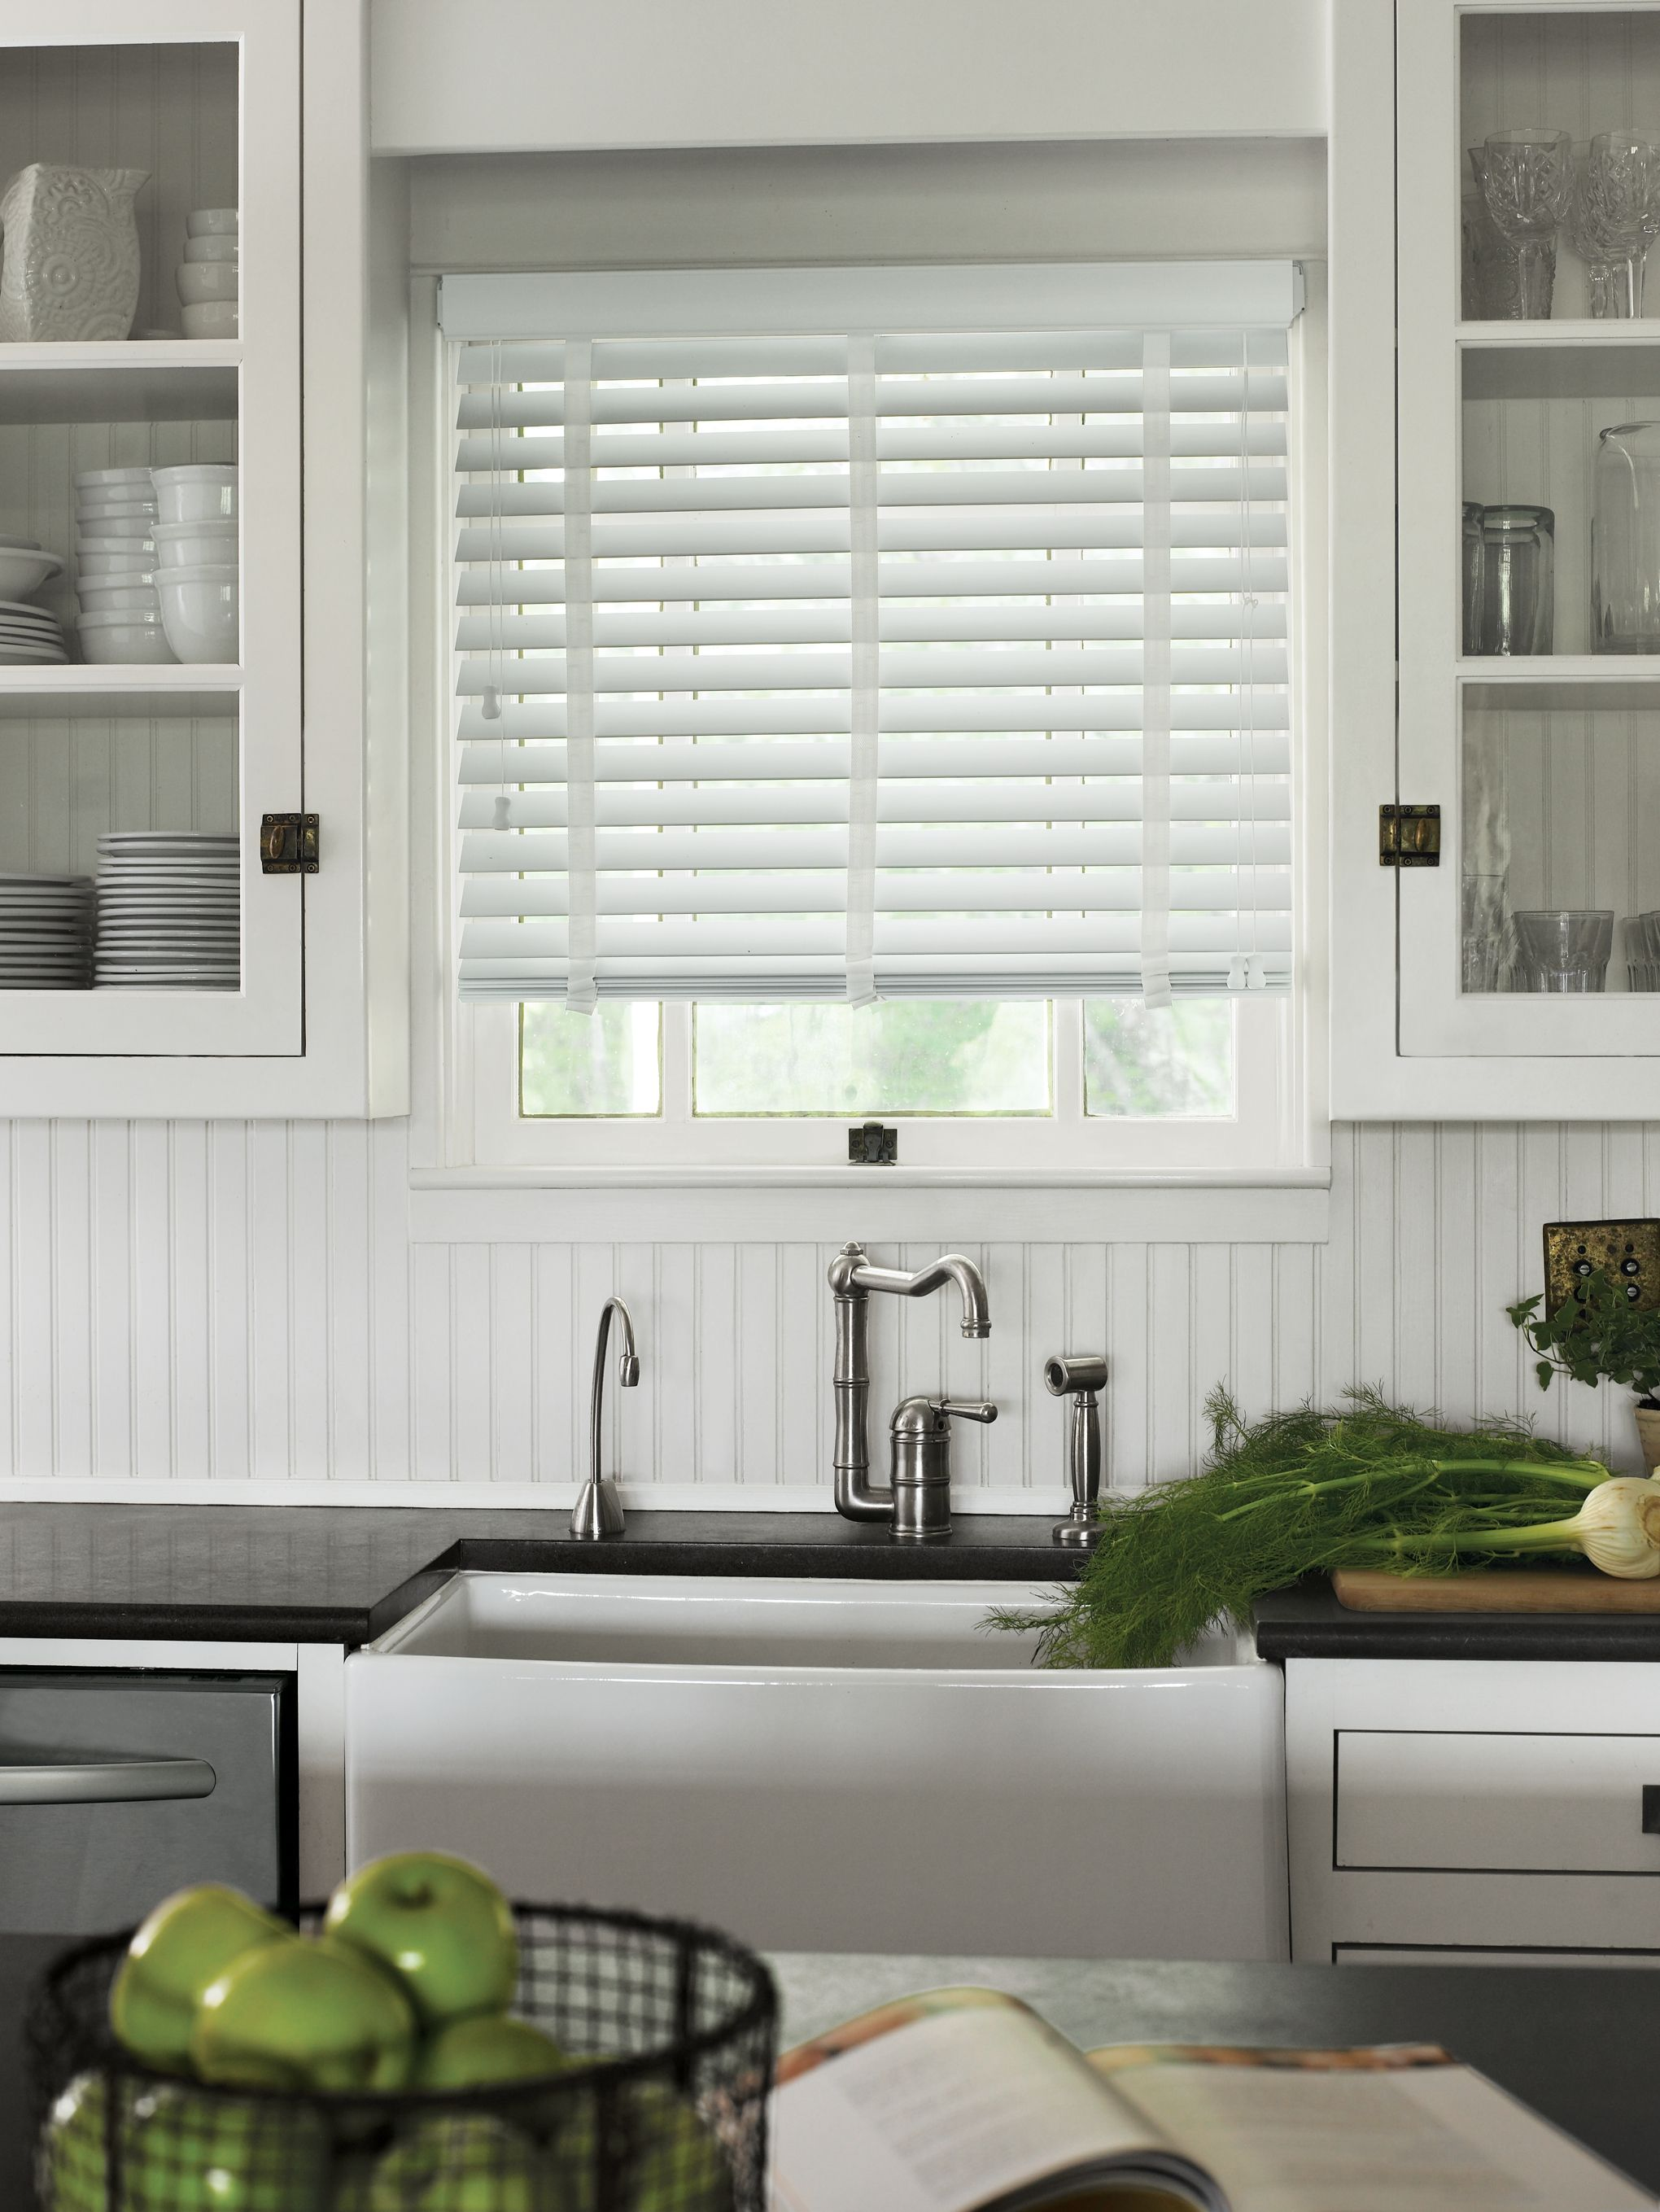 Wood Blinds in 9  Modern kitchen window, Kitchen window